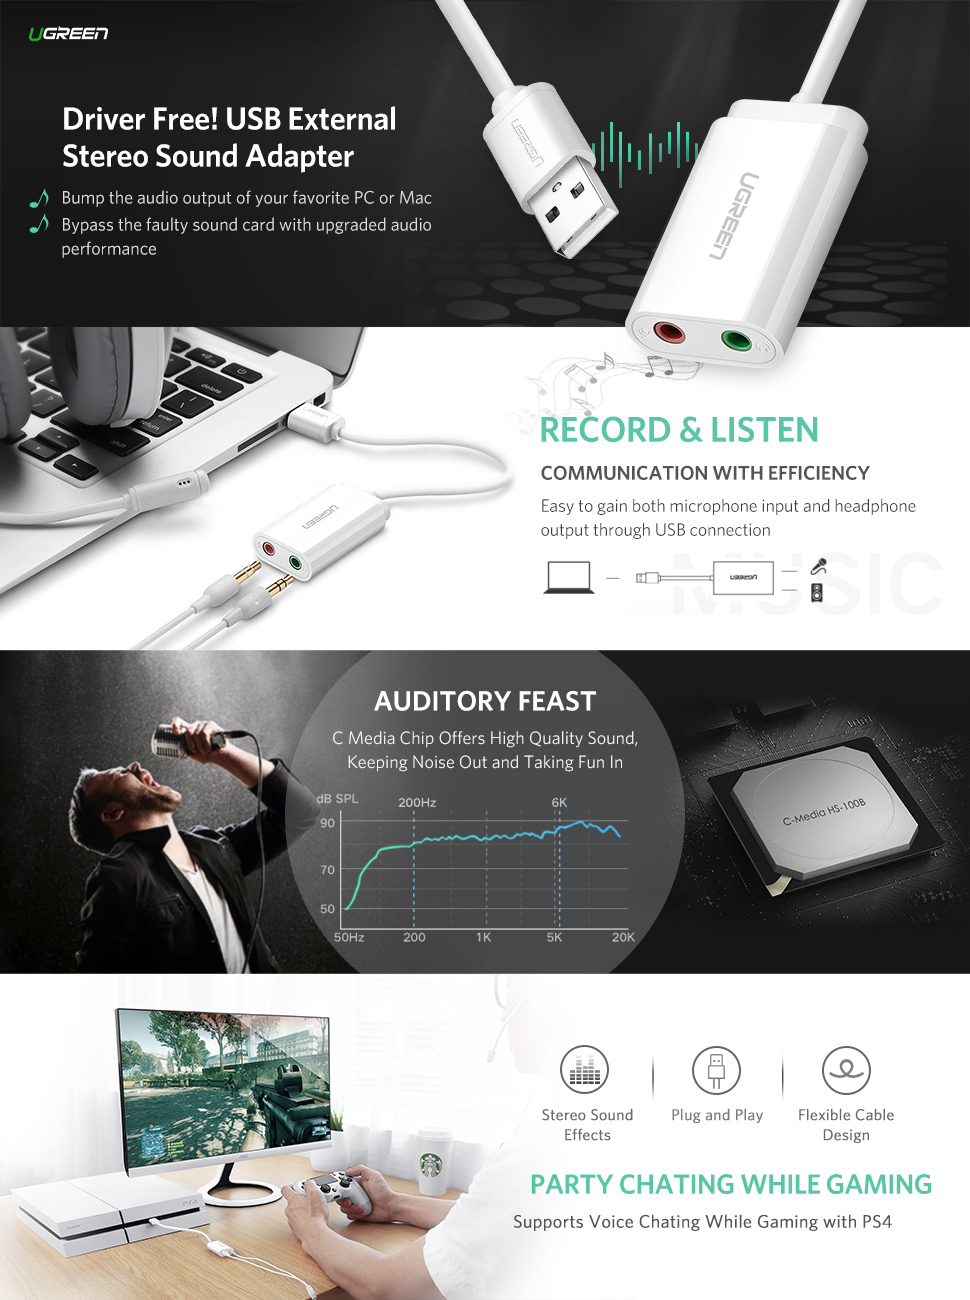 Ugreen Usb Audio Adapter External Stereo Sound Card With Mac Mini Mic Jack Wiring 35mm Headphone And Microphone For Windows Linux Pc Laptops Desktops Ps4 White